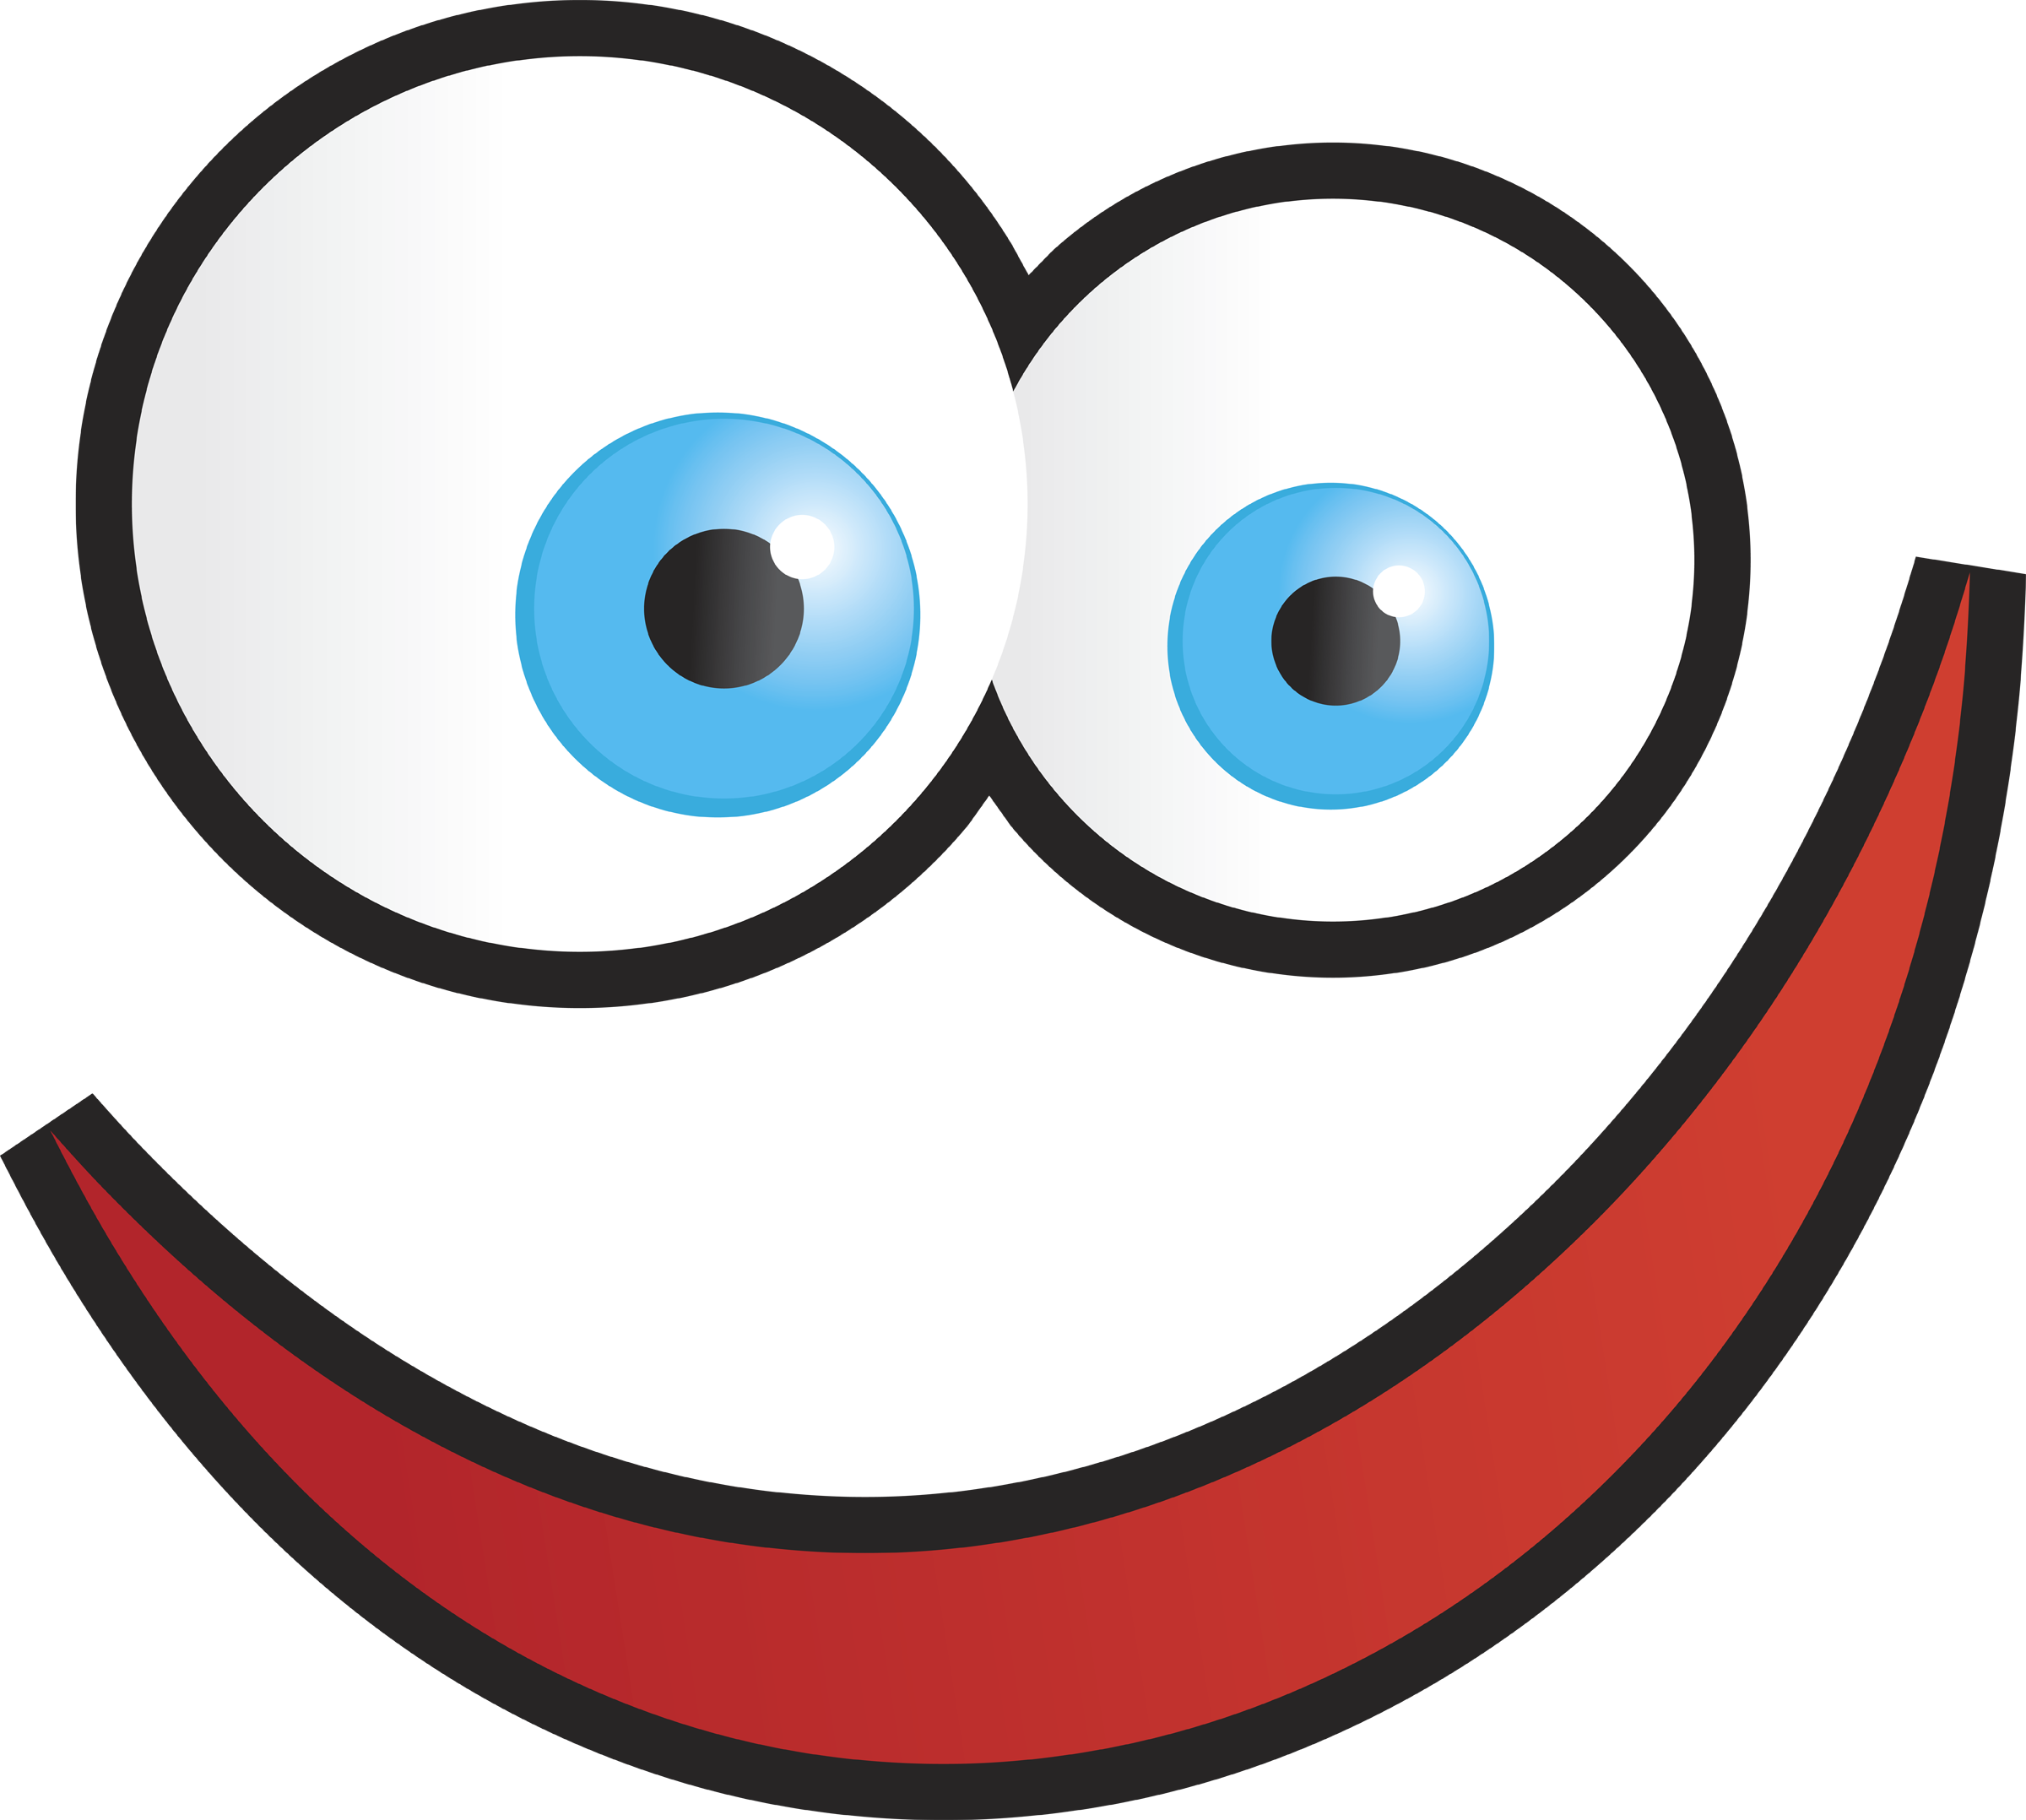 Laughing Cartoon Images - Cliparts.co - 334.8KB